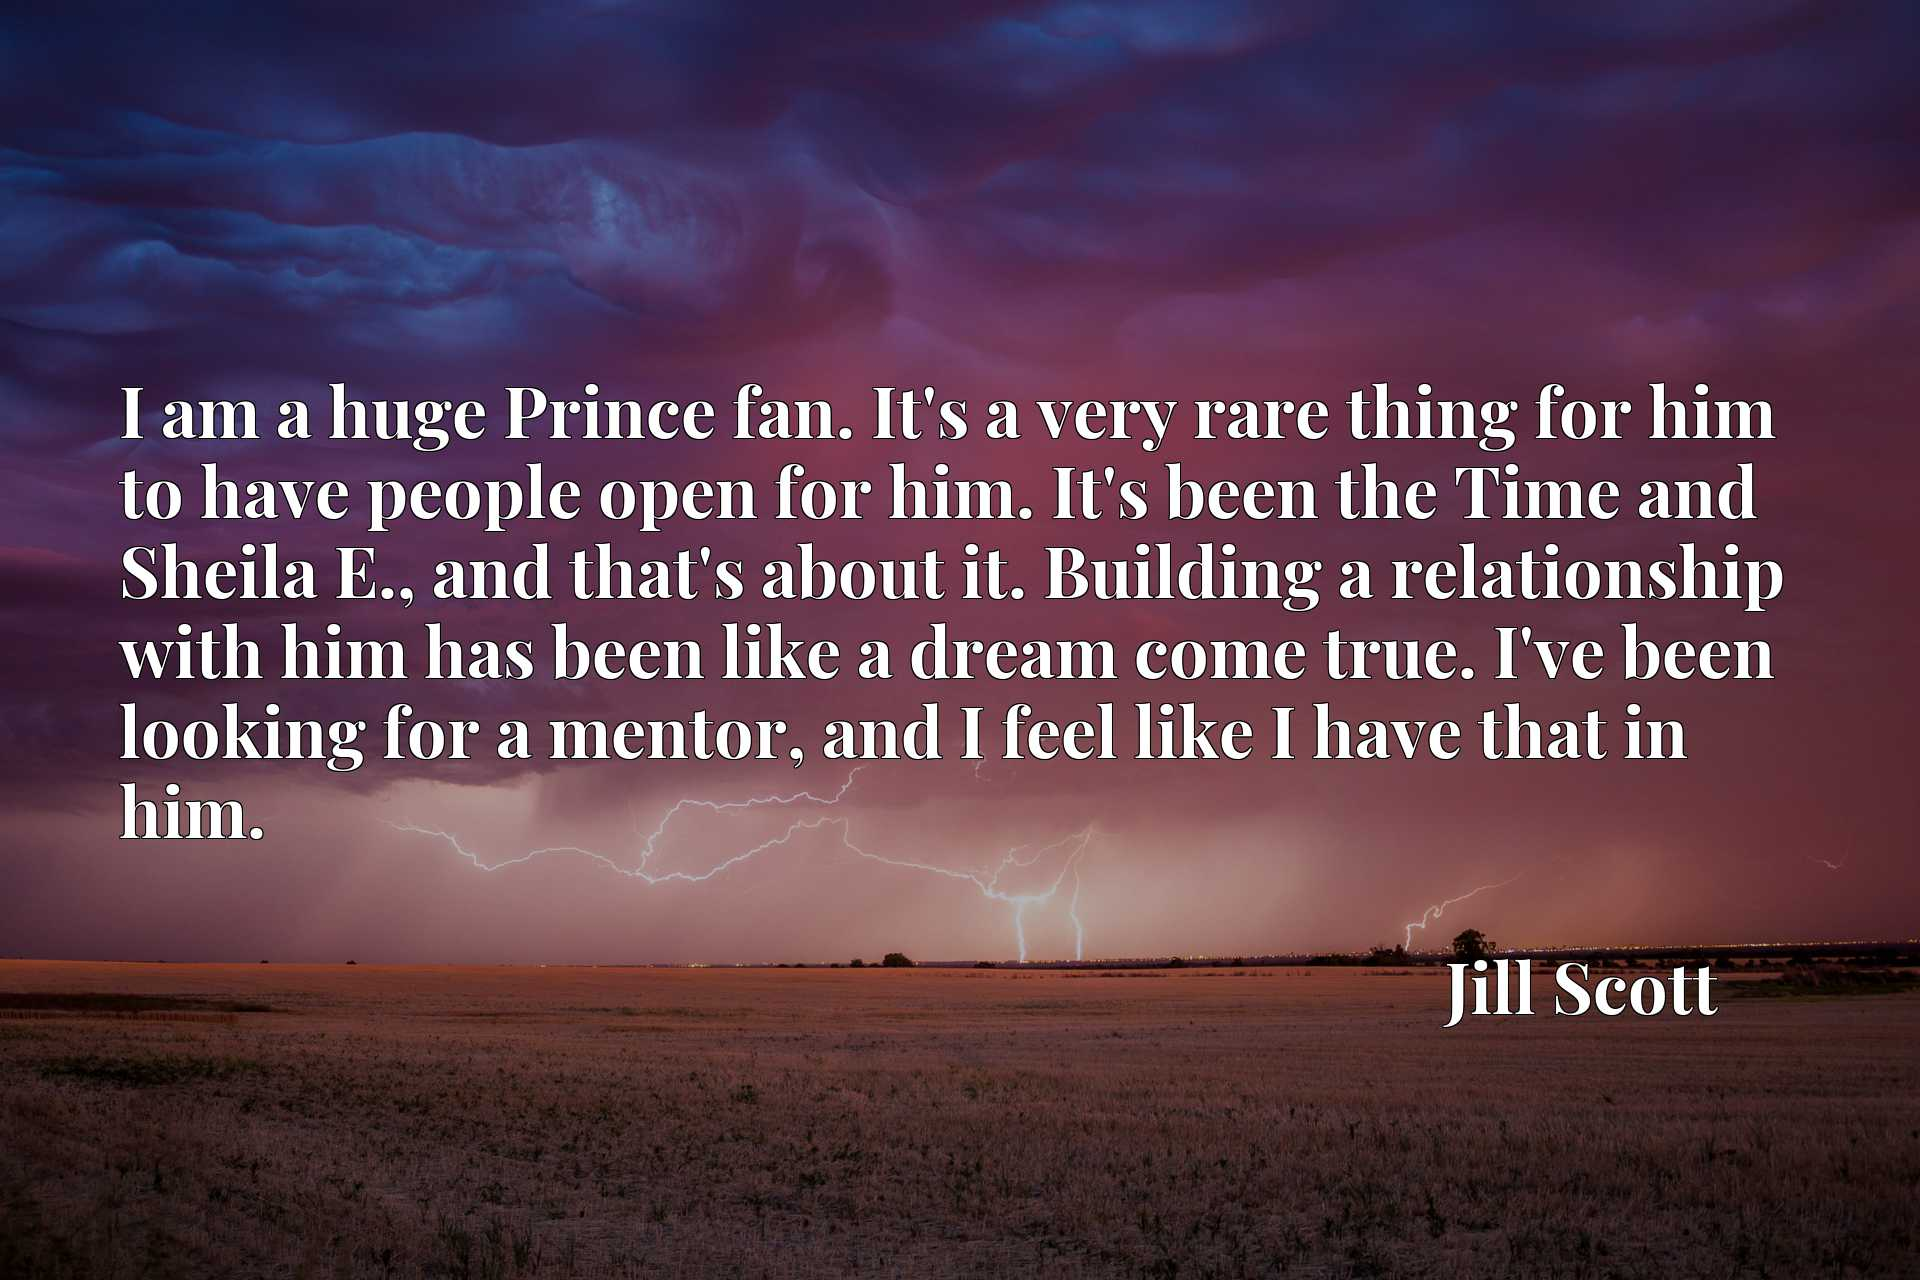 I am a huge Prince fan. It's a very rare thing for him to have people open for him. It's been the Time and Sheila E., and that's about it. Building a relationship with him has been like a dream come true. I've been looking for a mentor, and I feel like I have that in him.